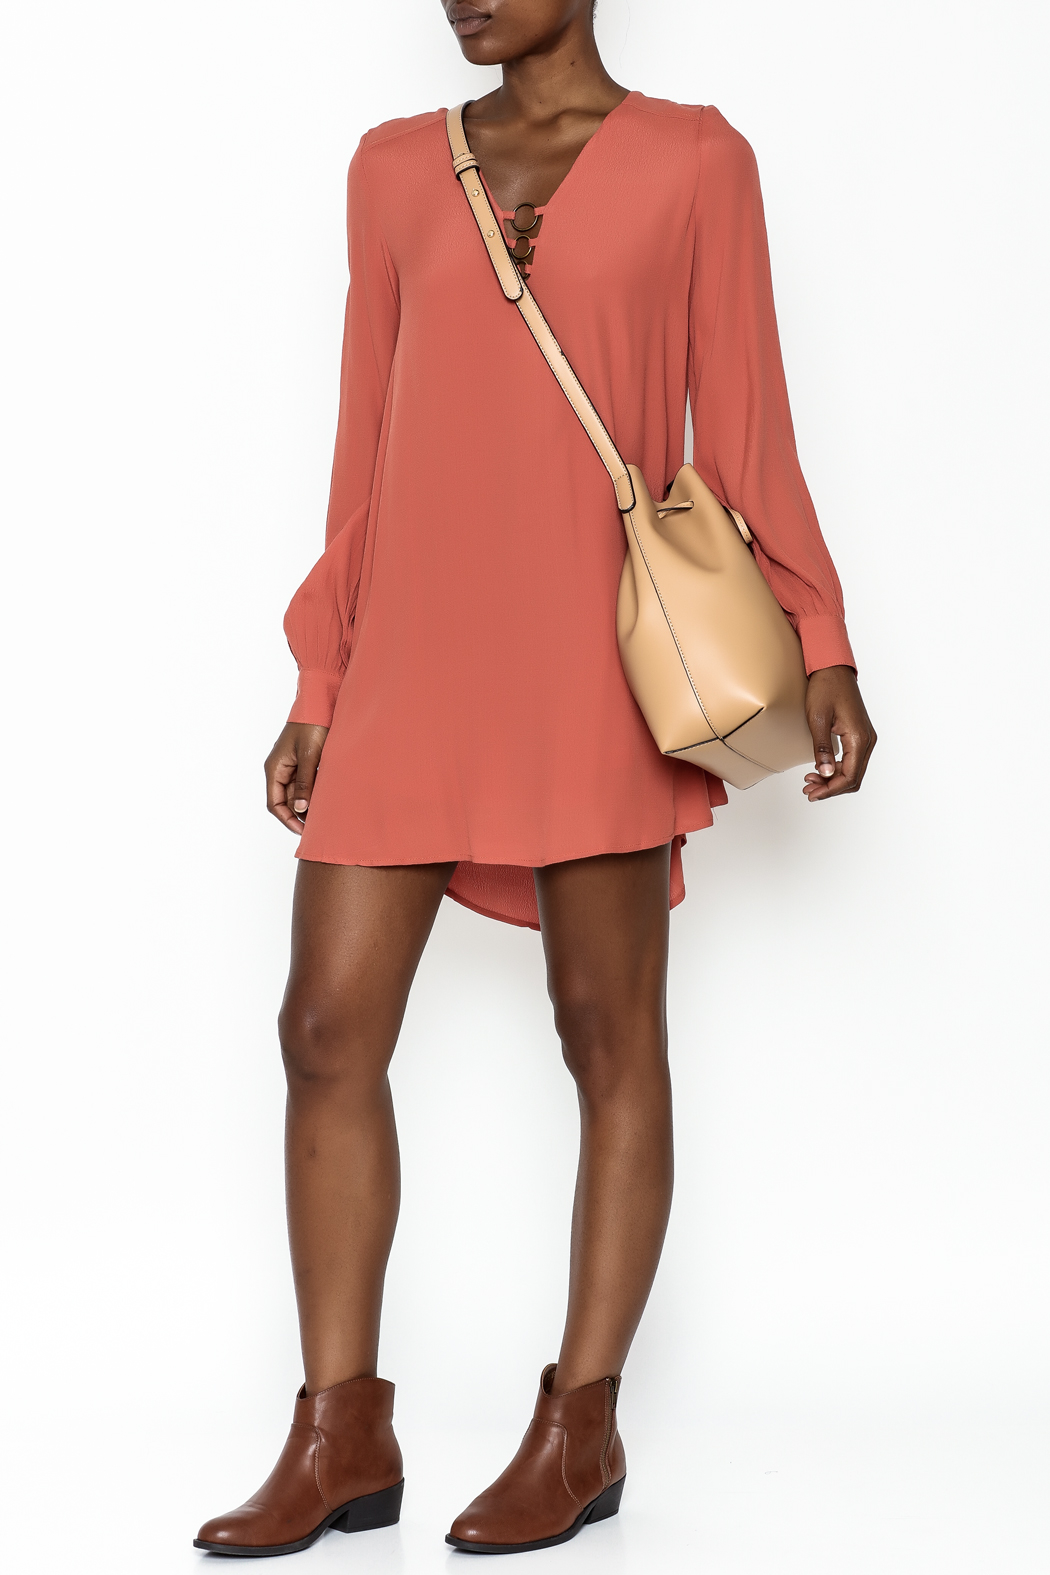 LoveRiche Burnt Orange Dress - Side Cropped Image